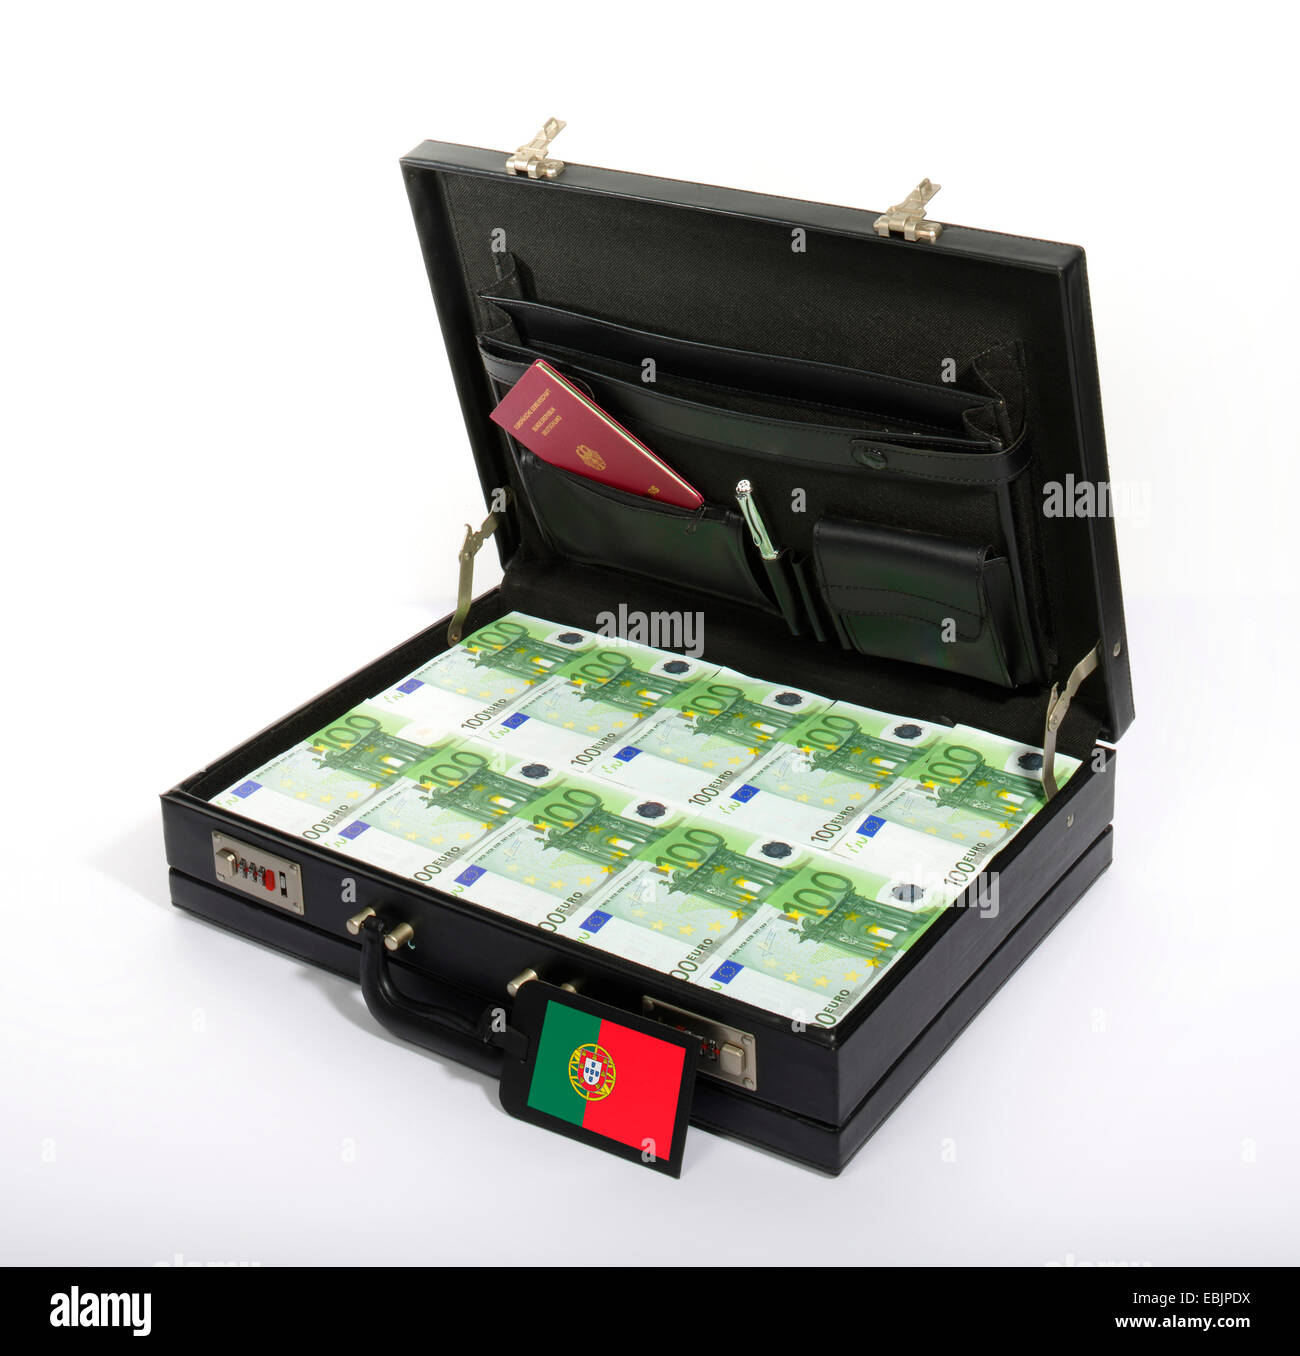 case with 100-Euro-bills, injection of capital for Portugal Stock Photo